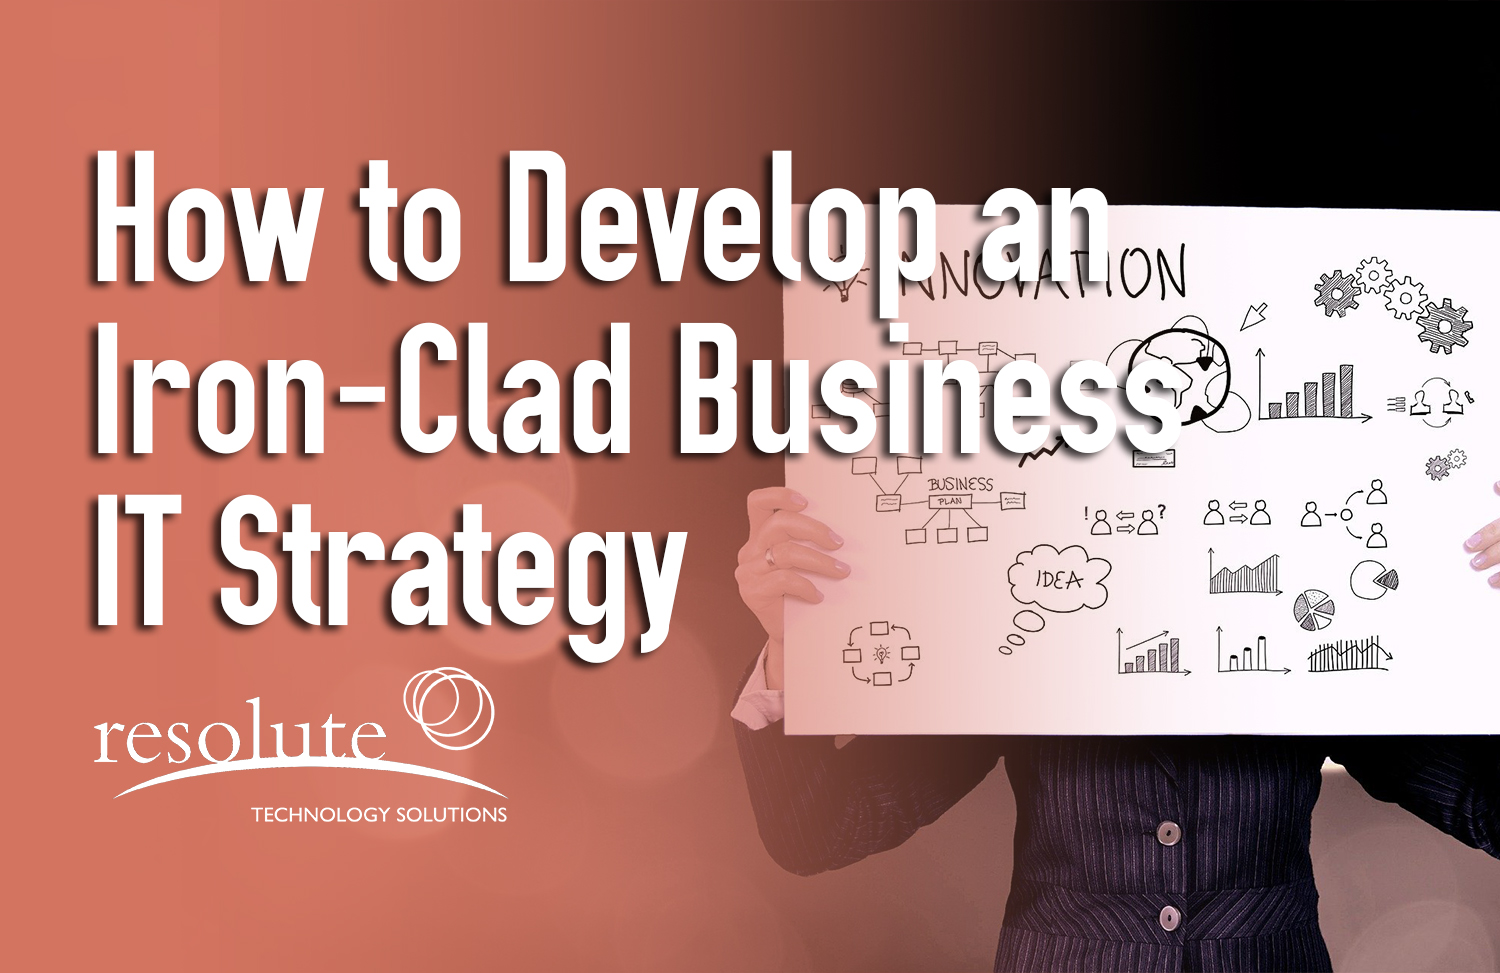 How to Develop a Business IT Strategy